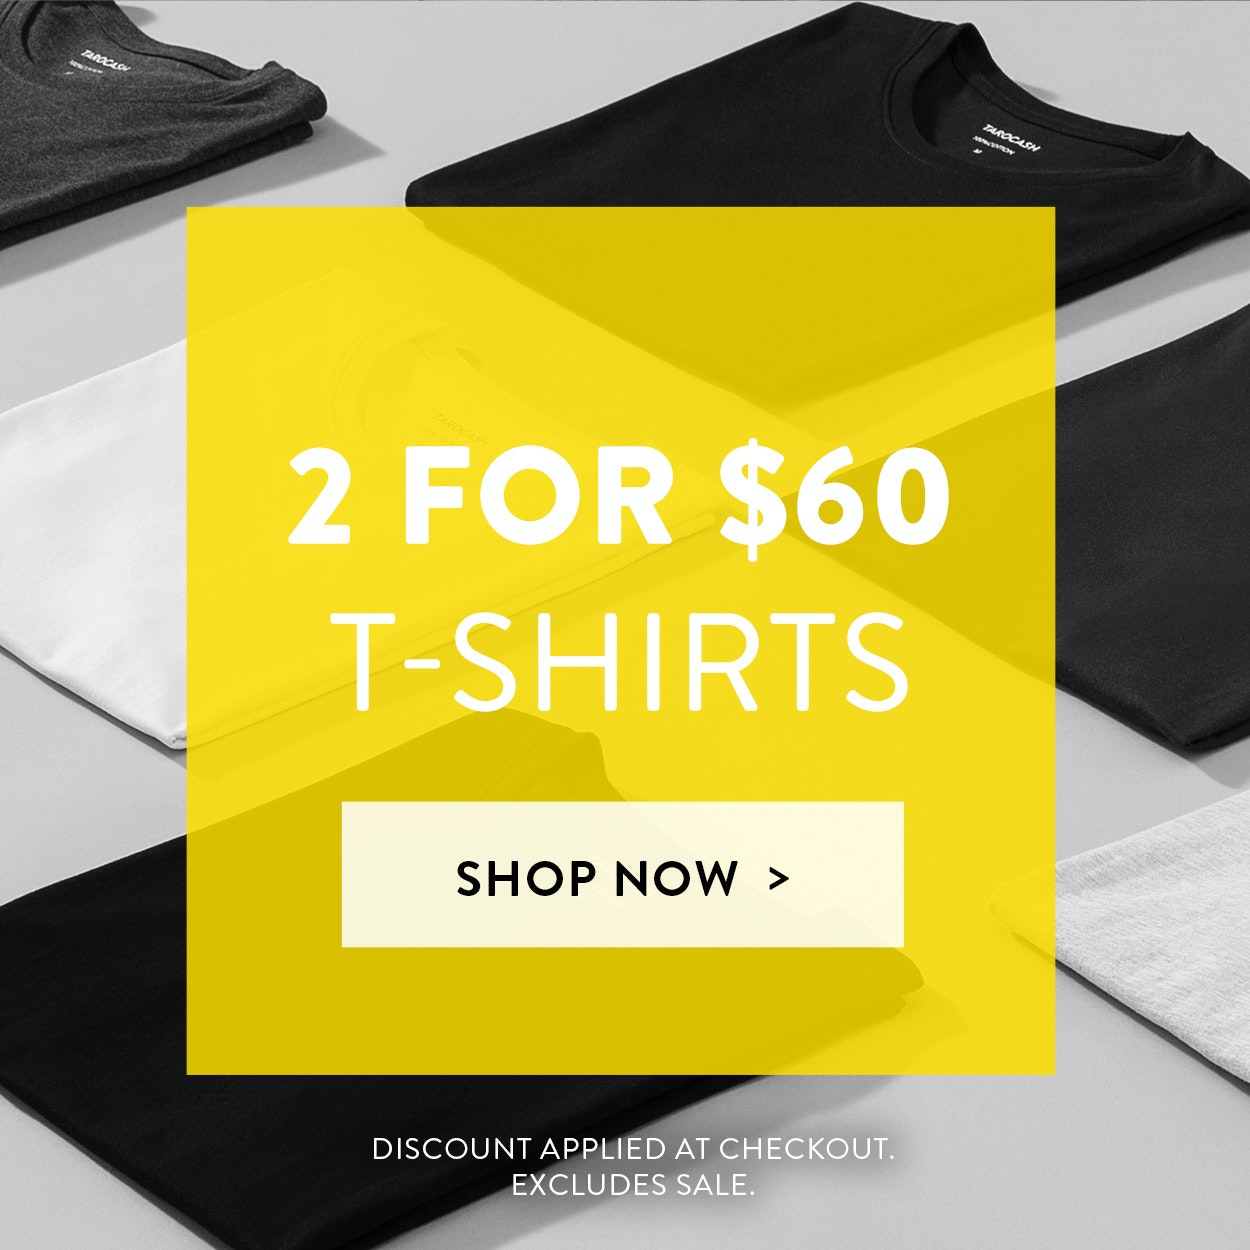 T-shirts: 2 for $60